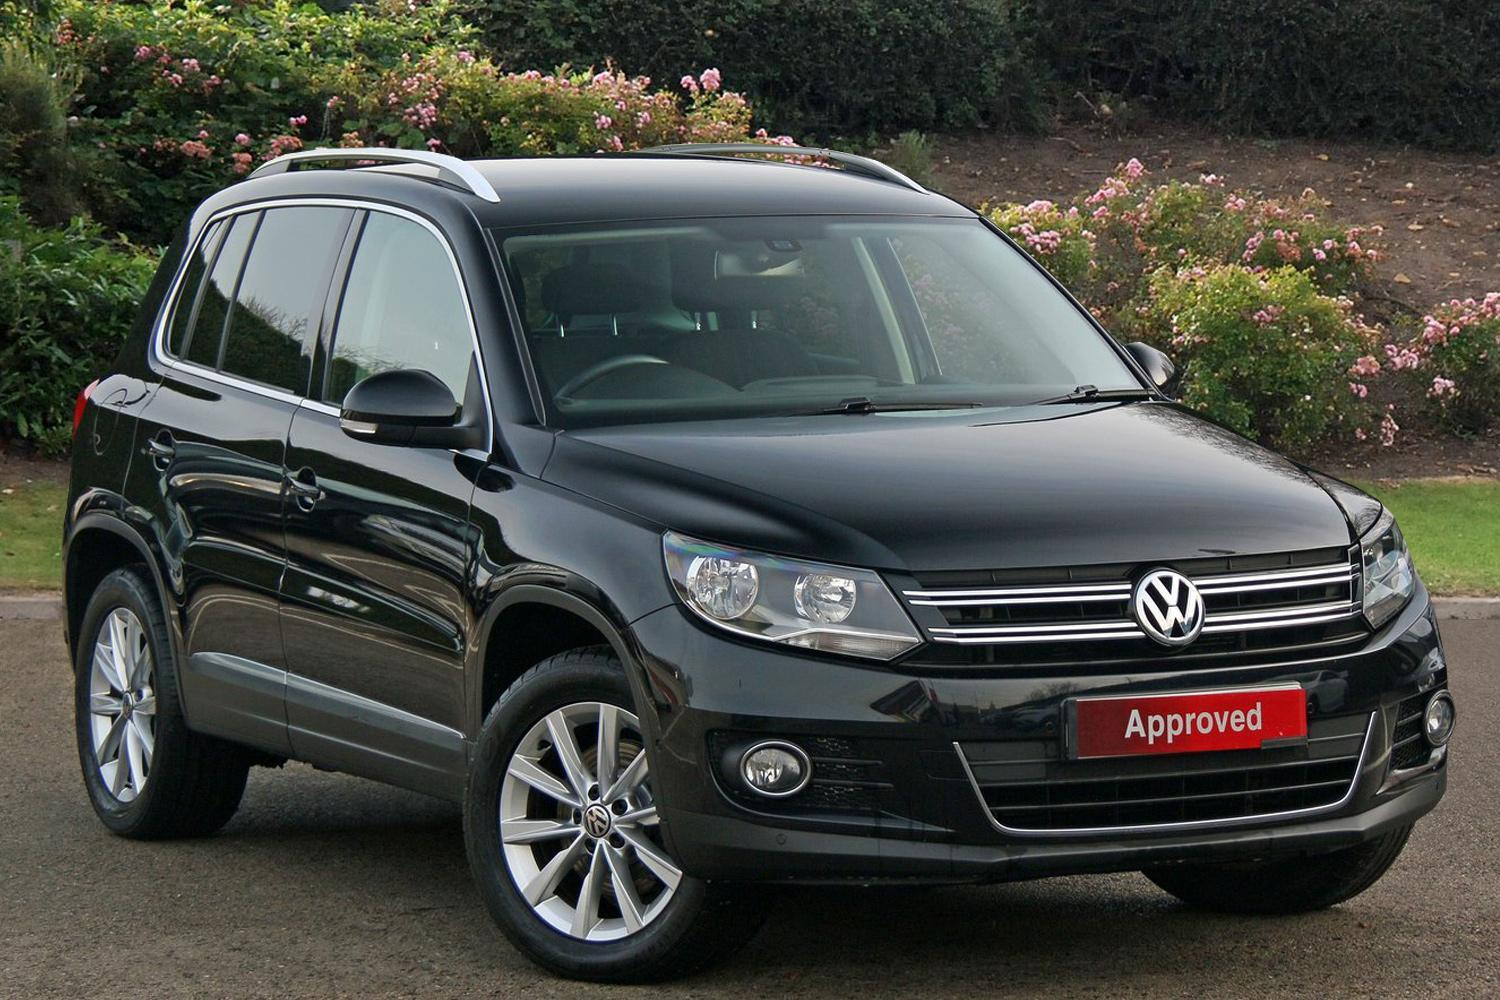 used volkswagen tiguan 2 0 tdi se 170 5dr diesel estate for sale vertu volkswagen. Black Bedroom Furniture Sets. Home Design Ideas